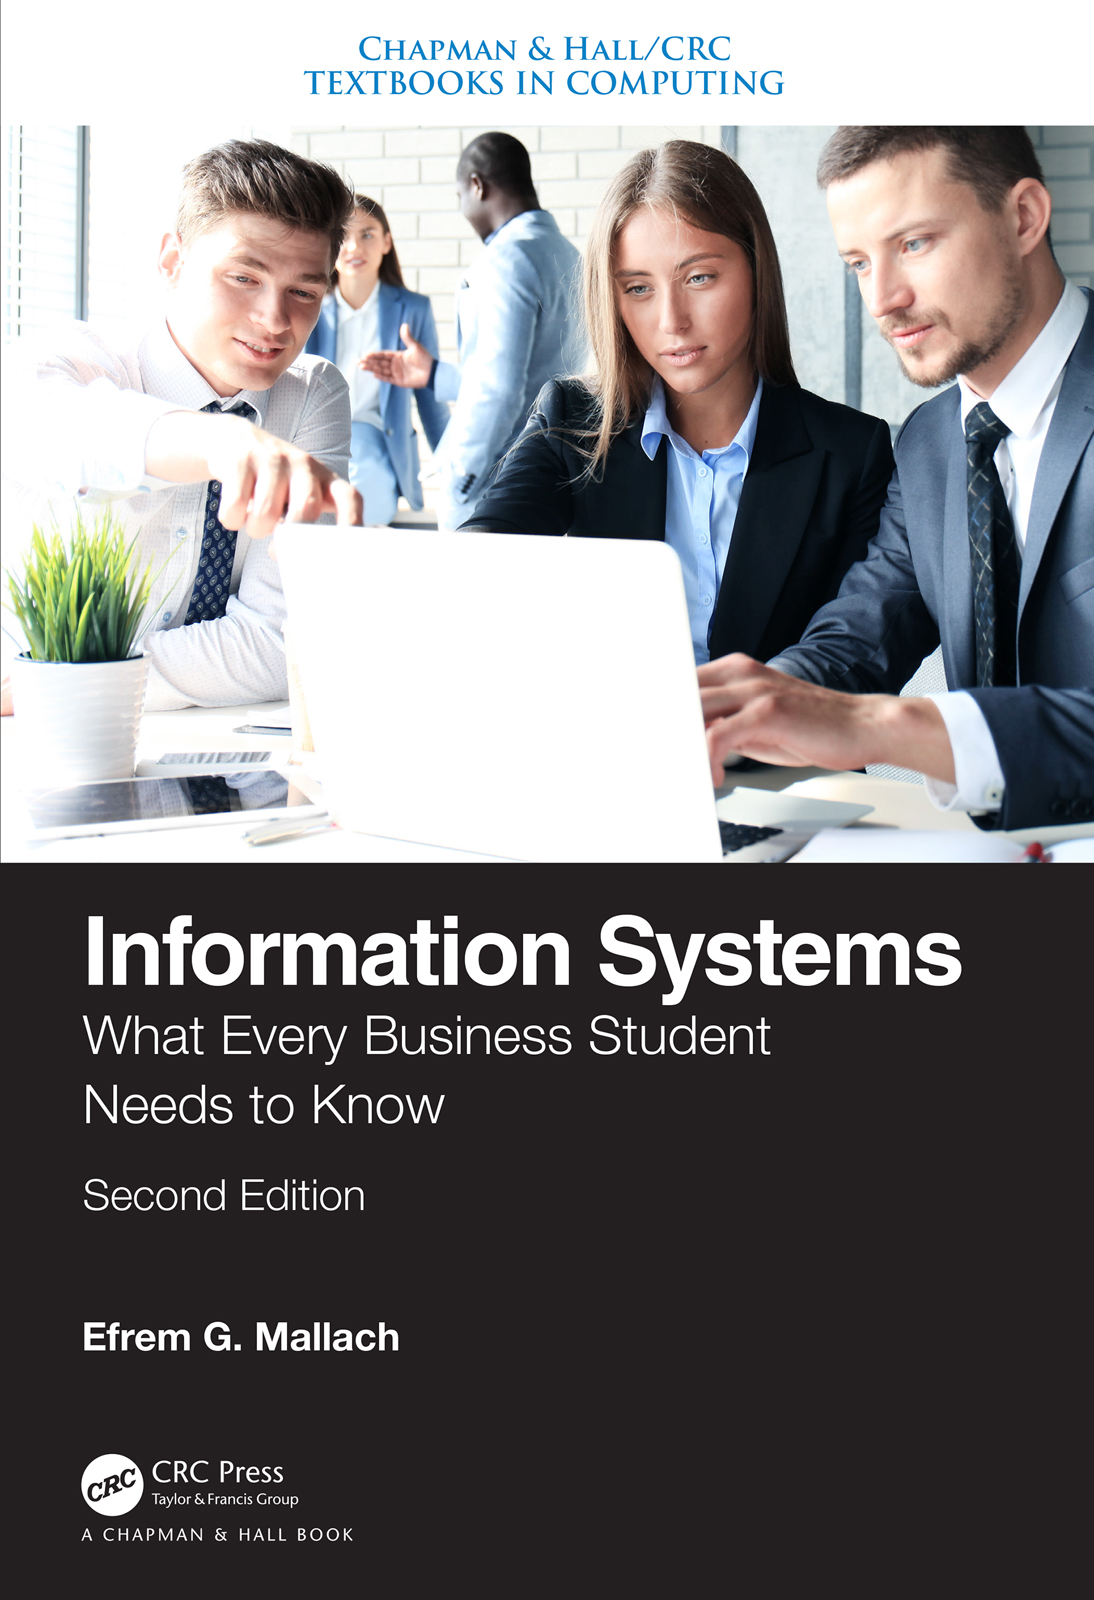 Information Systems: What Every Business Student Needs to Know, Second Edition book cover